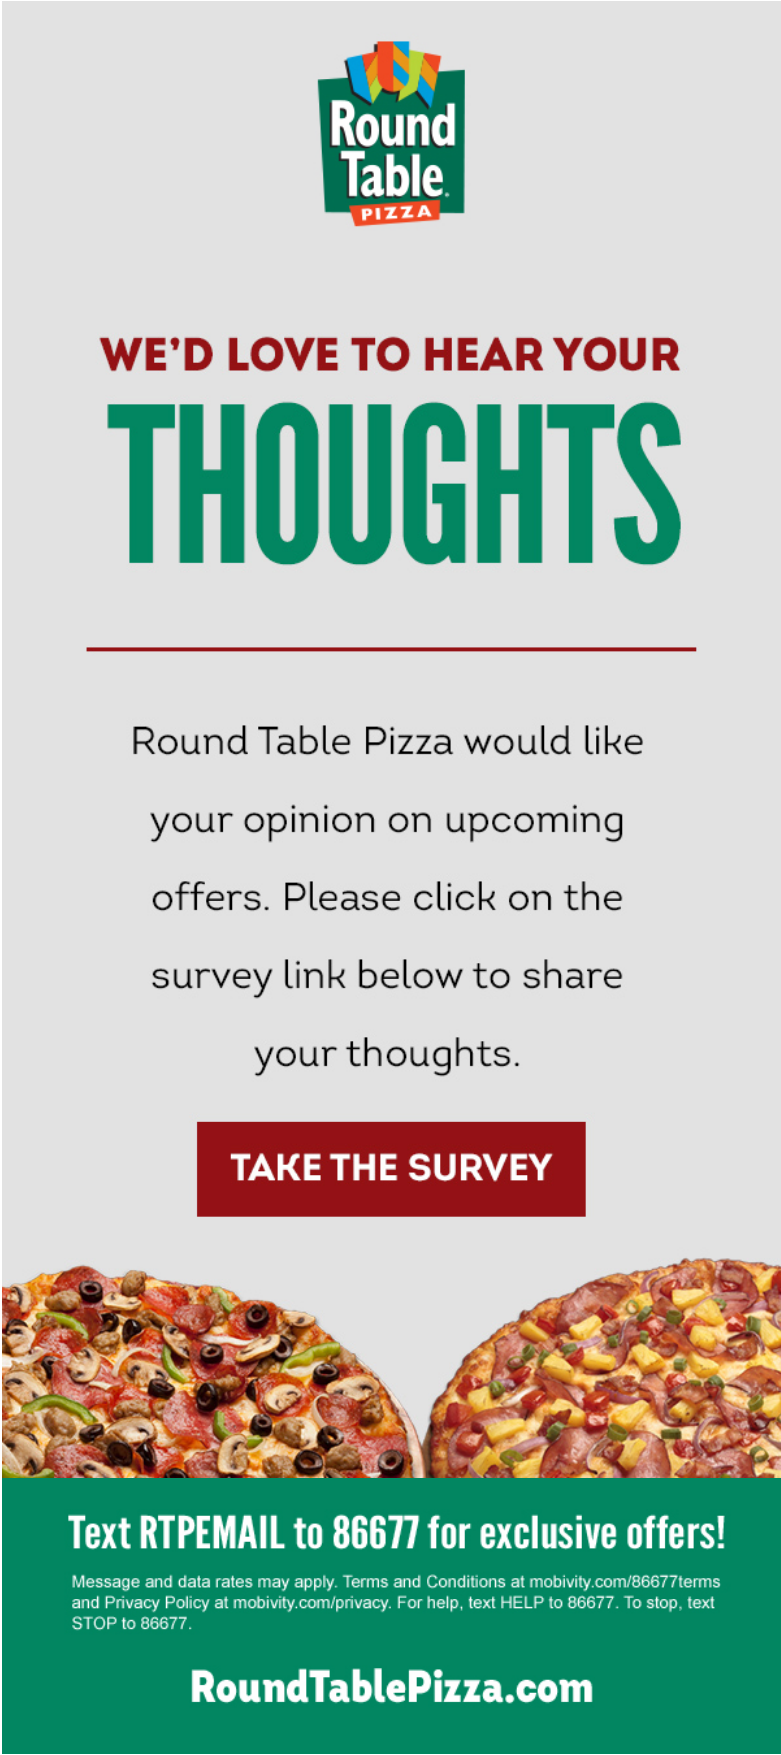 Round Table Pizza would like your opinion on upcoming offers.